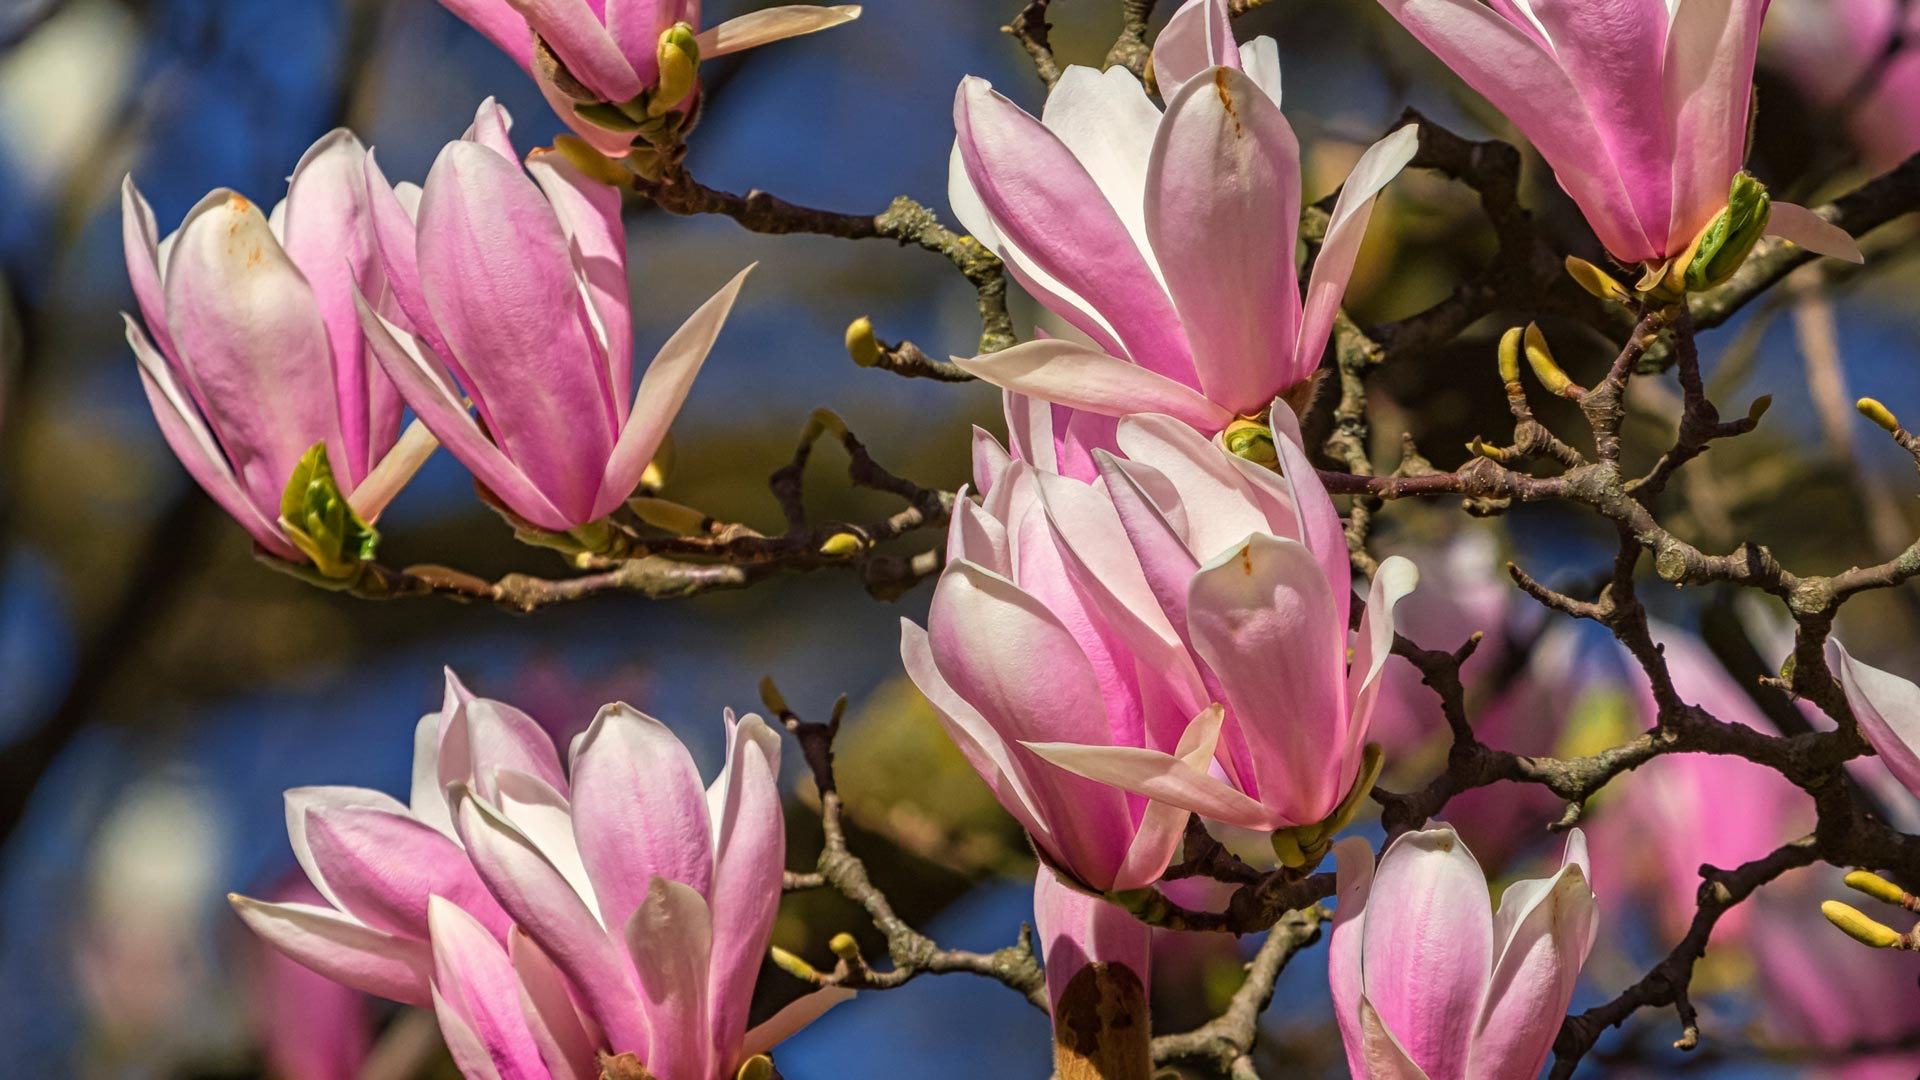 Close up on huangshan, magnolia cylindrica, flowers by day